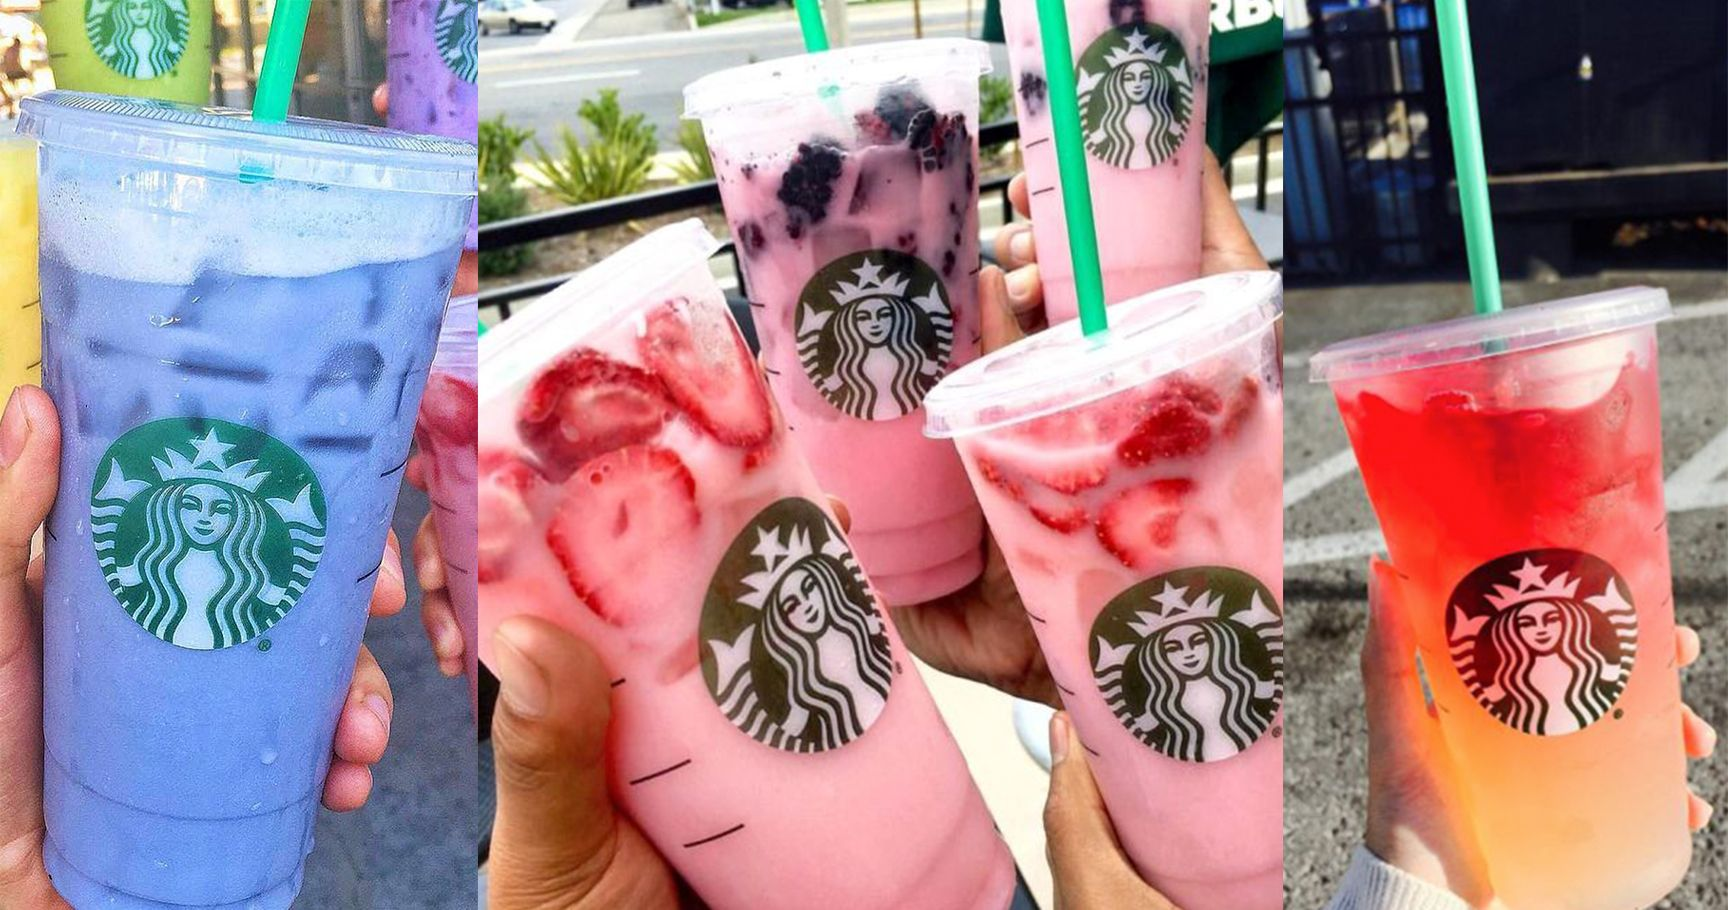 16 Starbucks Secret Menu Drinks You Need To Know About